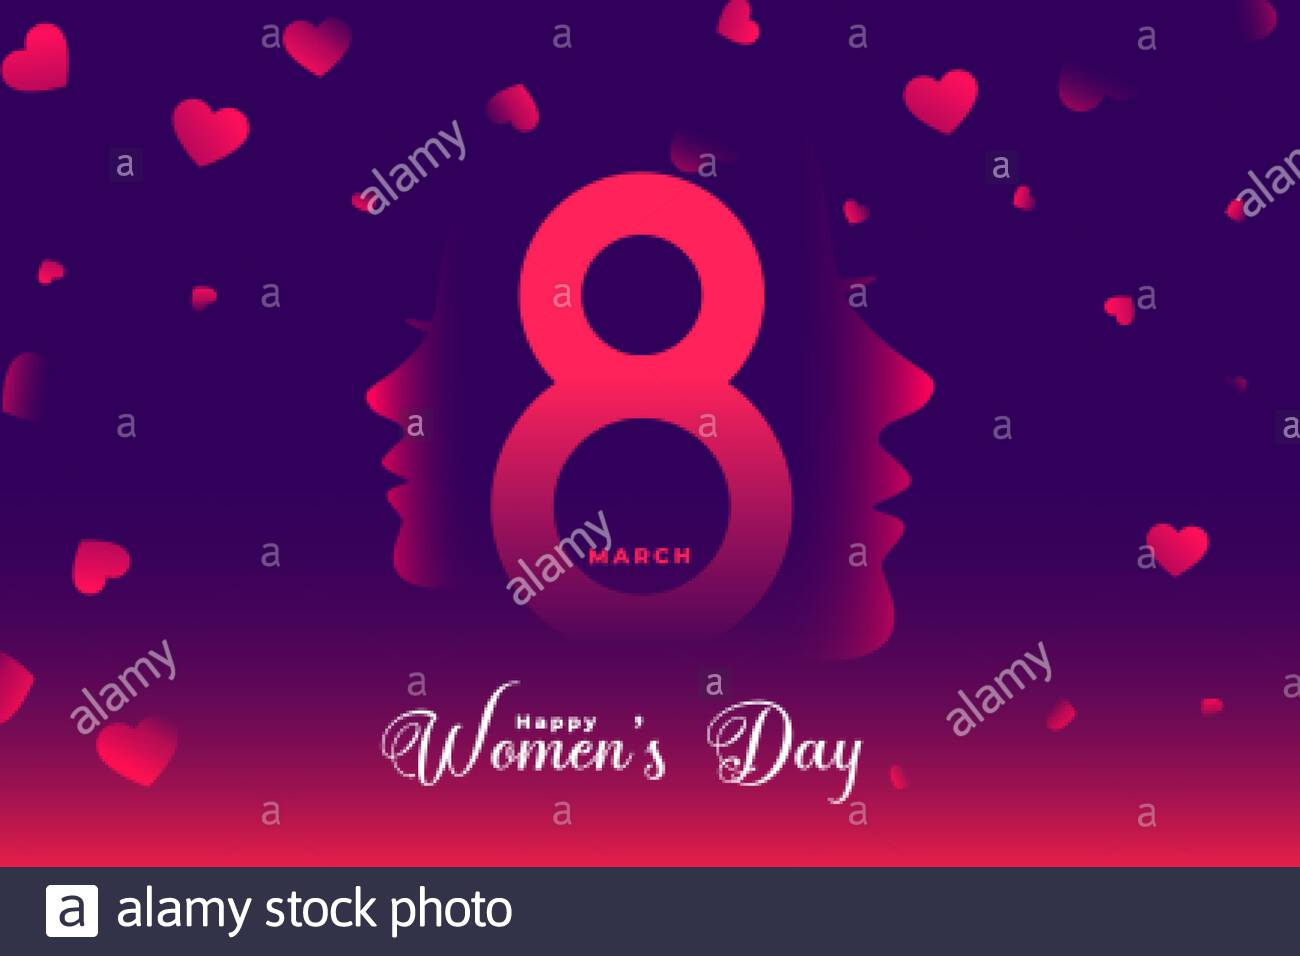 Happy Womens Day Beautiful Banner Design Background Stock Vector Image Art Alamy